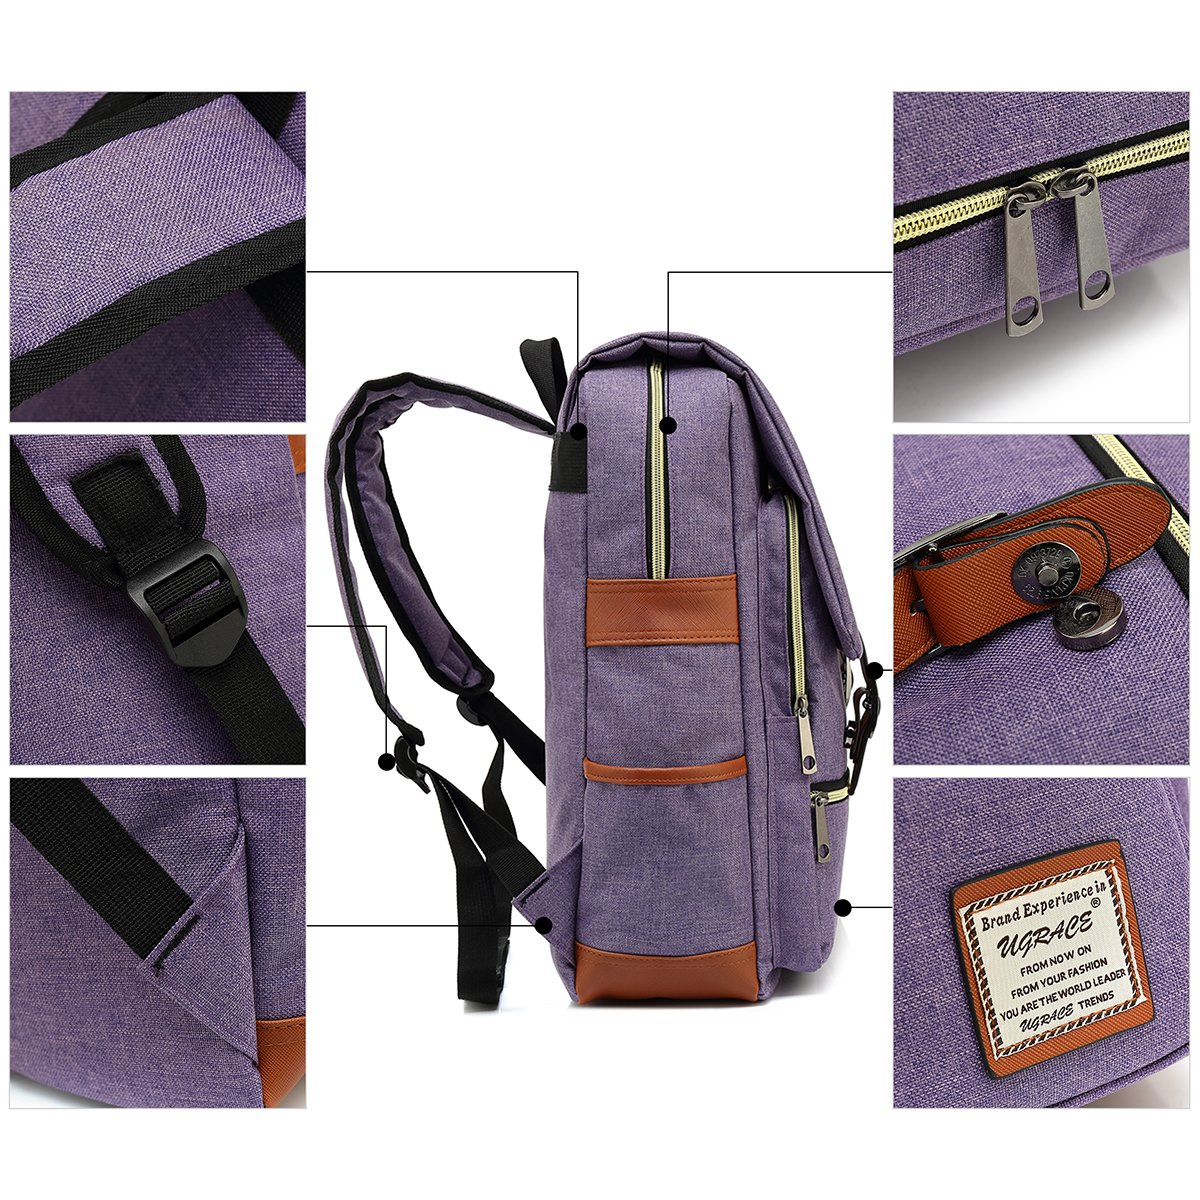 UGRACE Slim Business Laptop Backpack Elegant Casual Daypacks Outdoor Sports Rucksack School Shoulder Bag for Men Women, Tear Resistant Unique Travelling Backpack Fits up to 15.6Inch Macbook in Violet by UGRACE (Image #5)